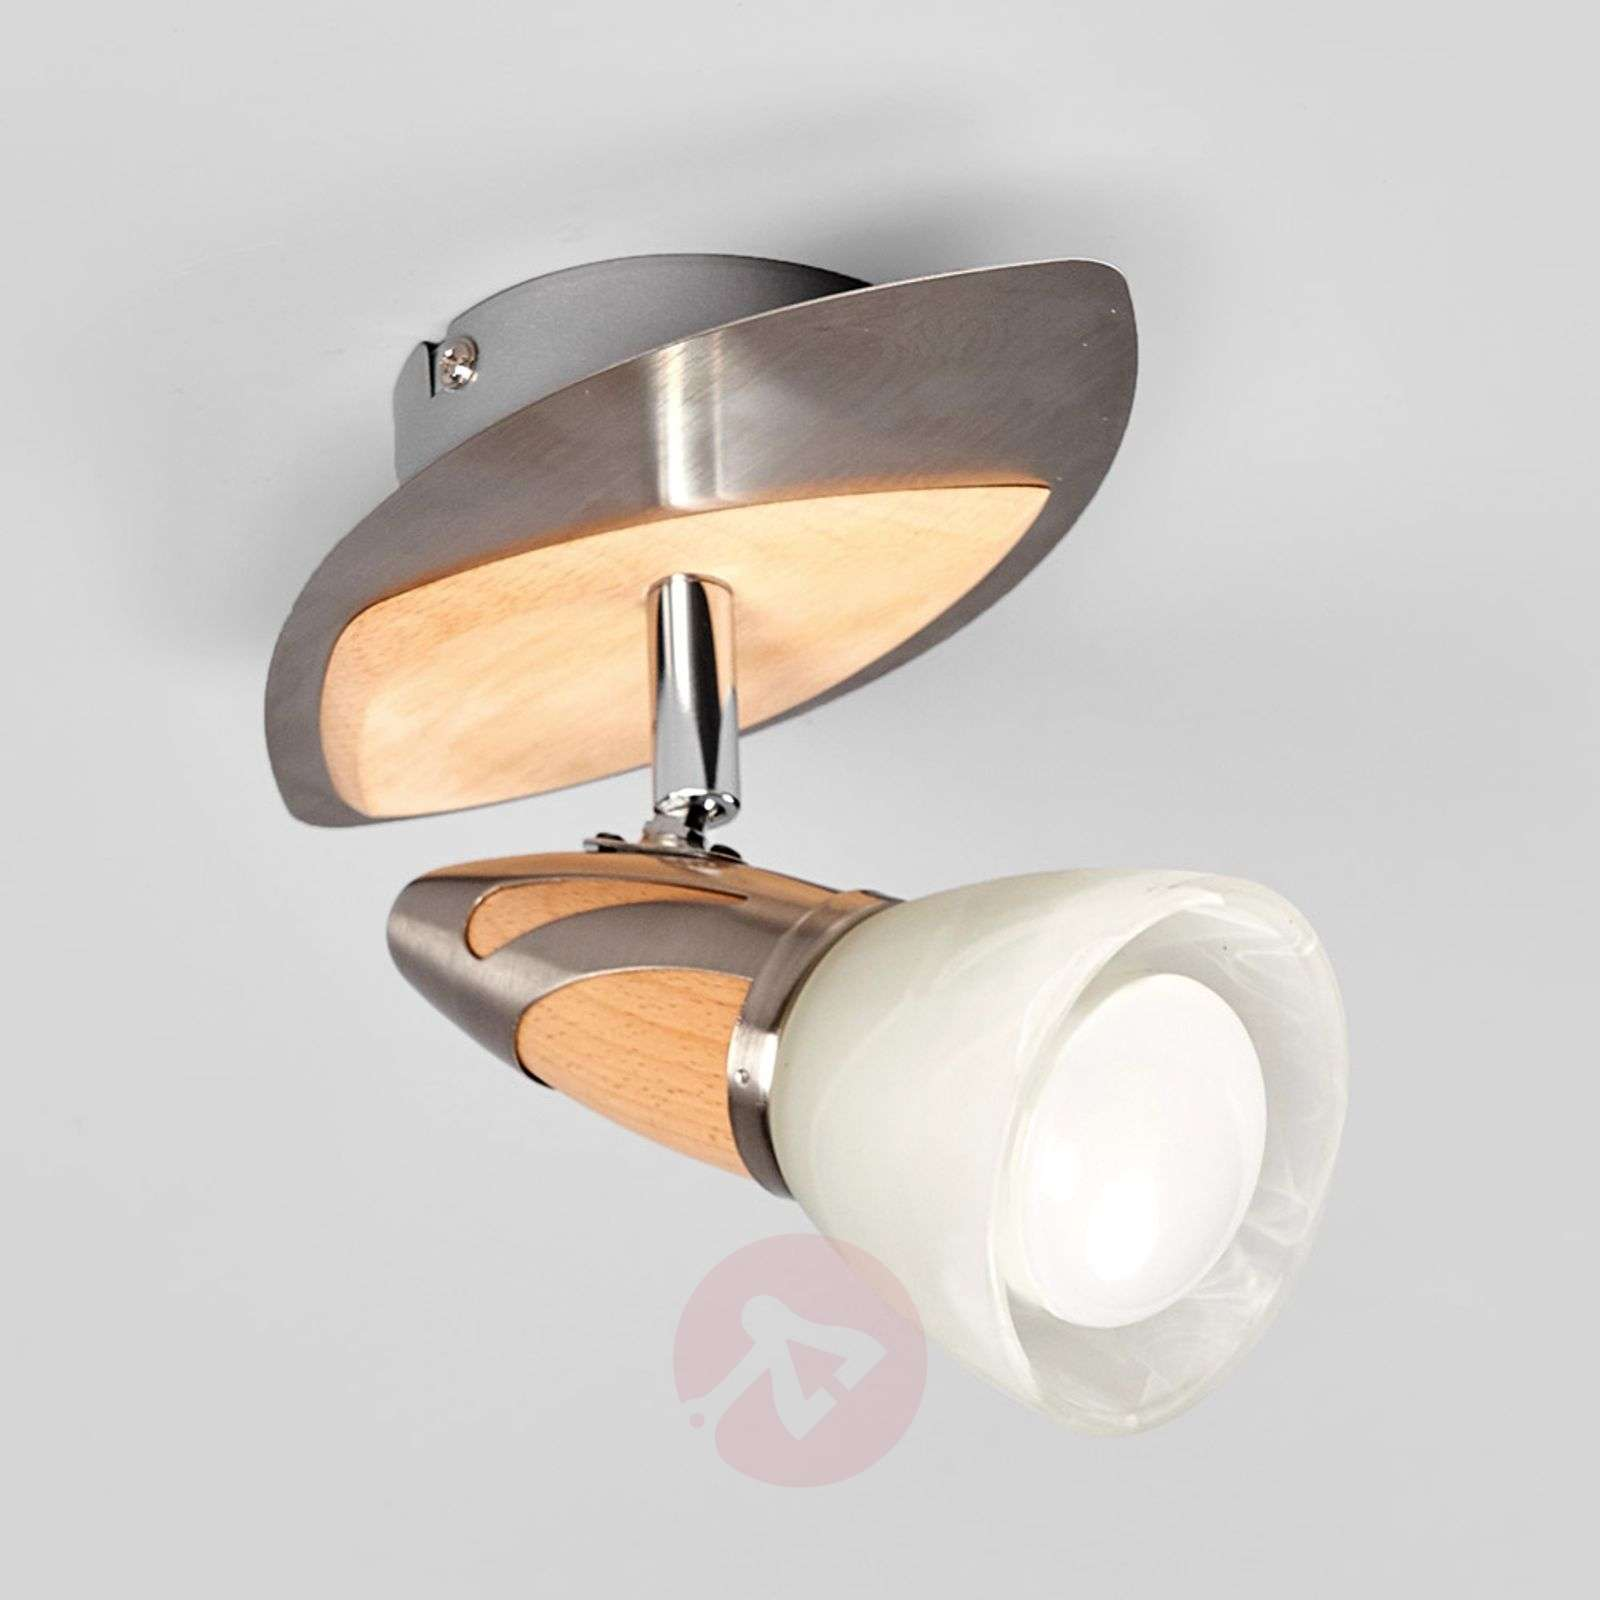 Spotlight Marena with a wooden finish, E14 R50 LED-9620552-01